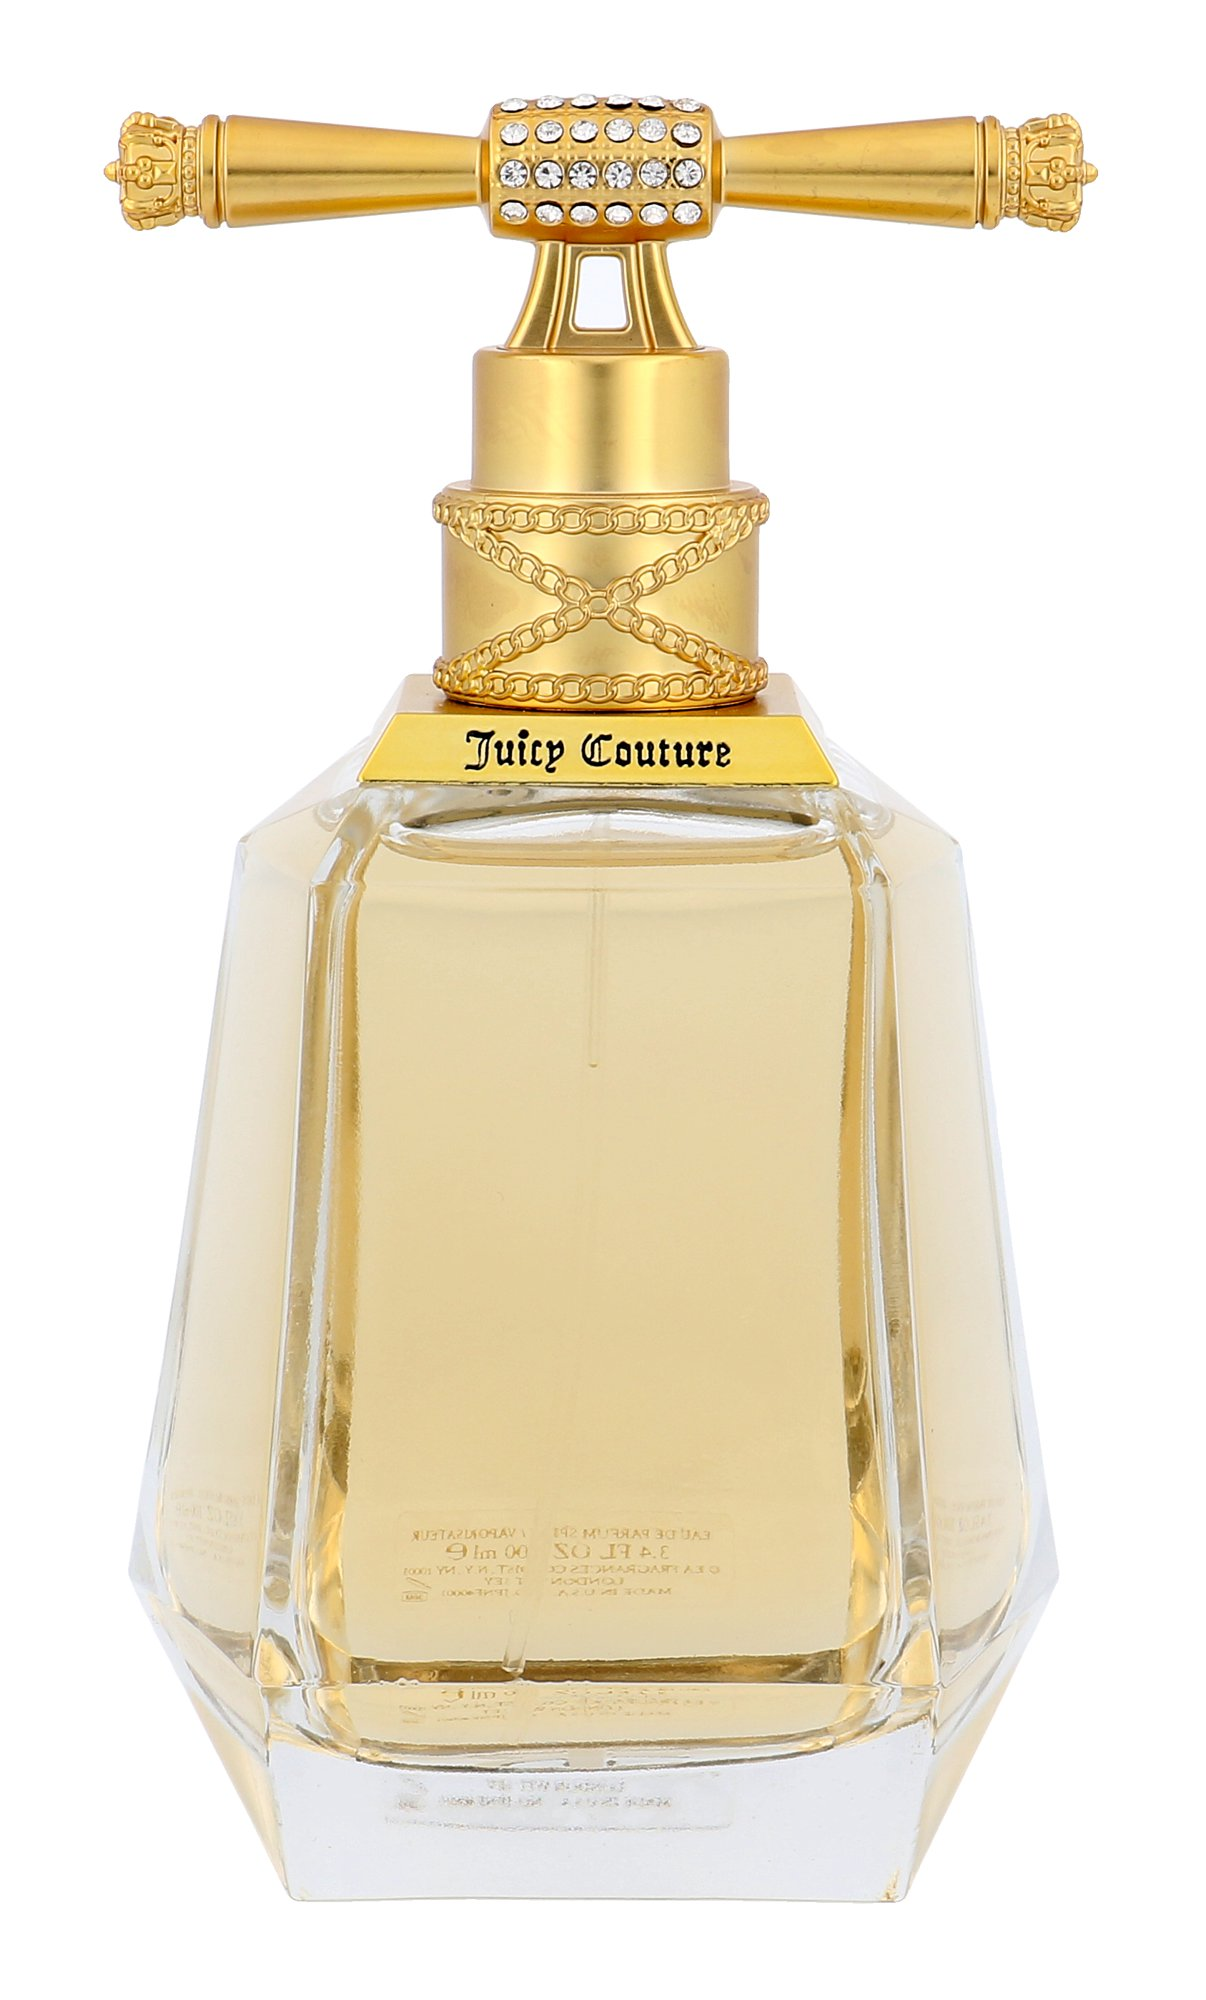 Juicy Couture I Am Juicy Couture, edp 100ml